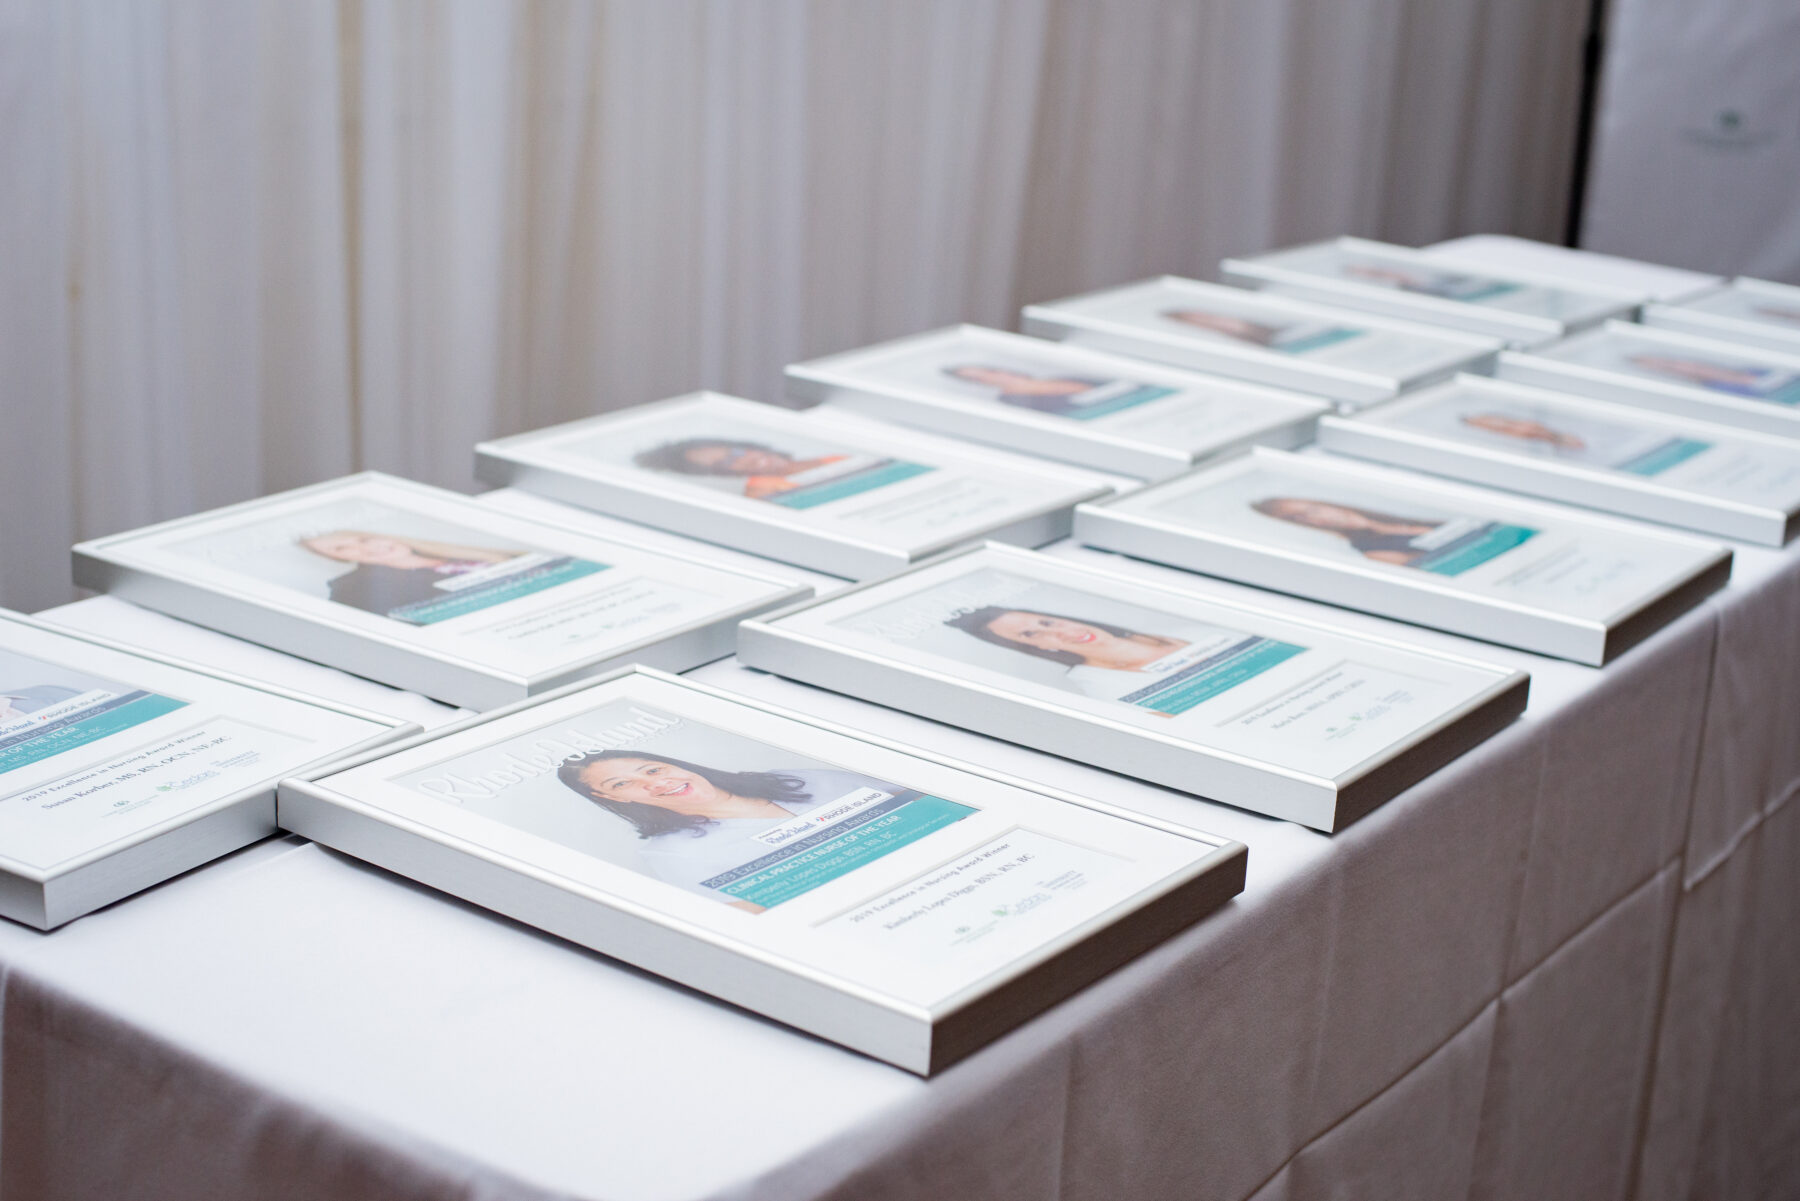 Rhode Island Monthly Excellence in Nursing Awards 2019 Kirkbrae Country Club Blueflash Photography 3